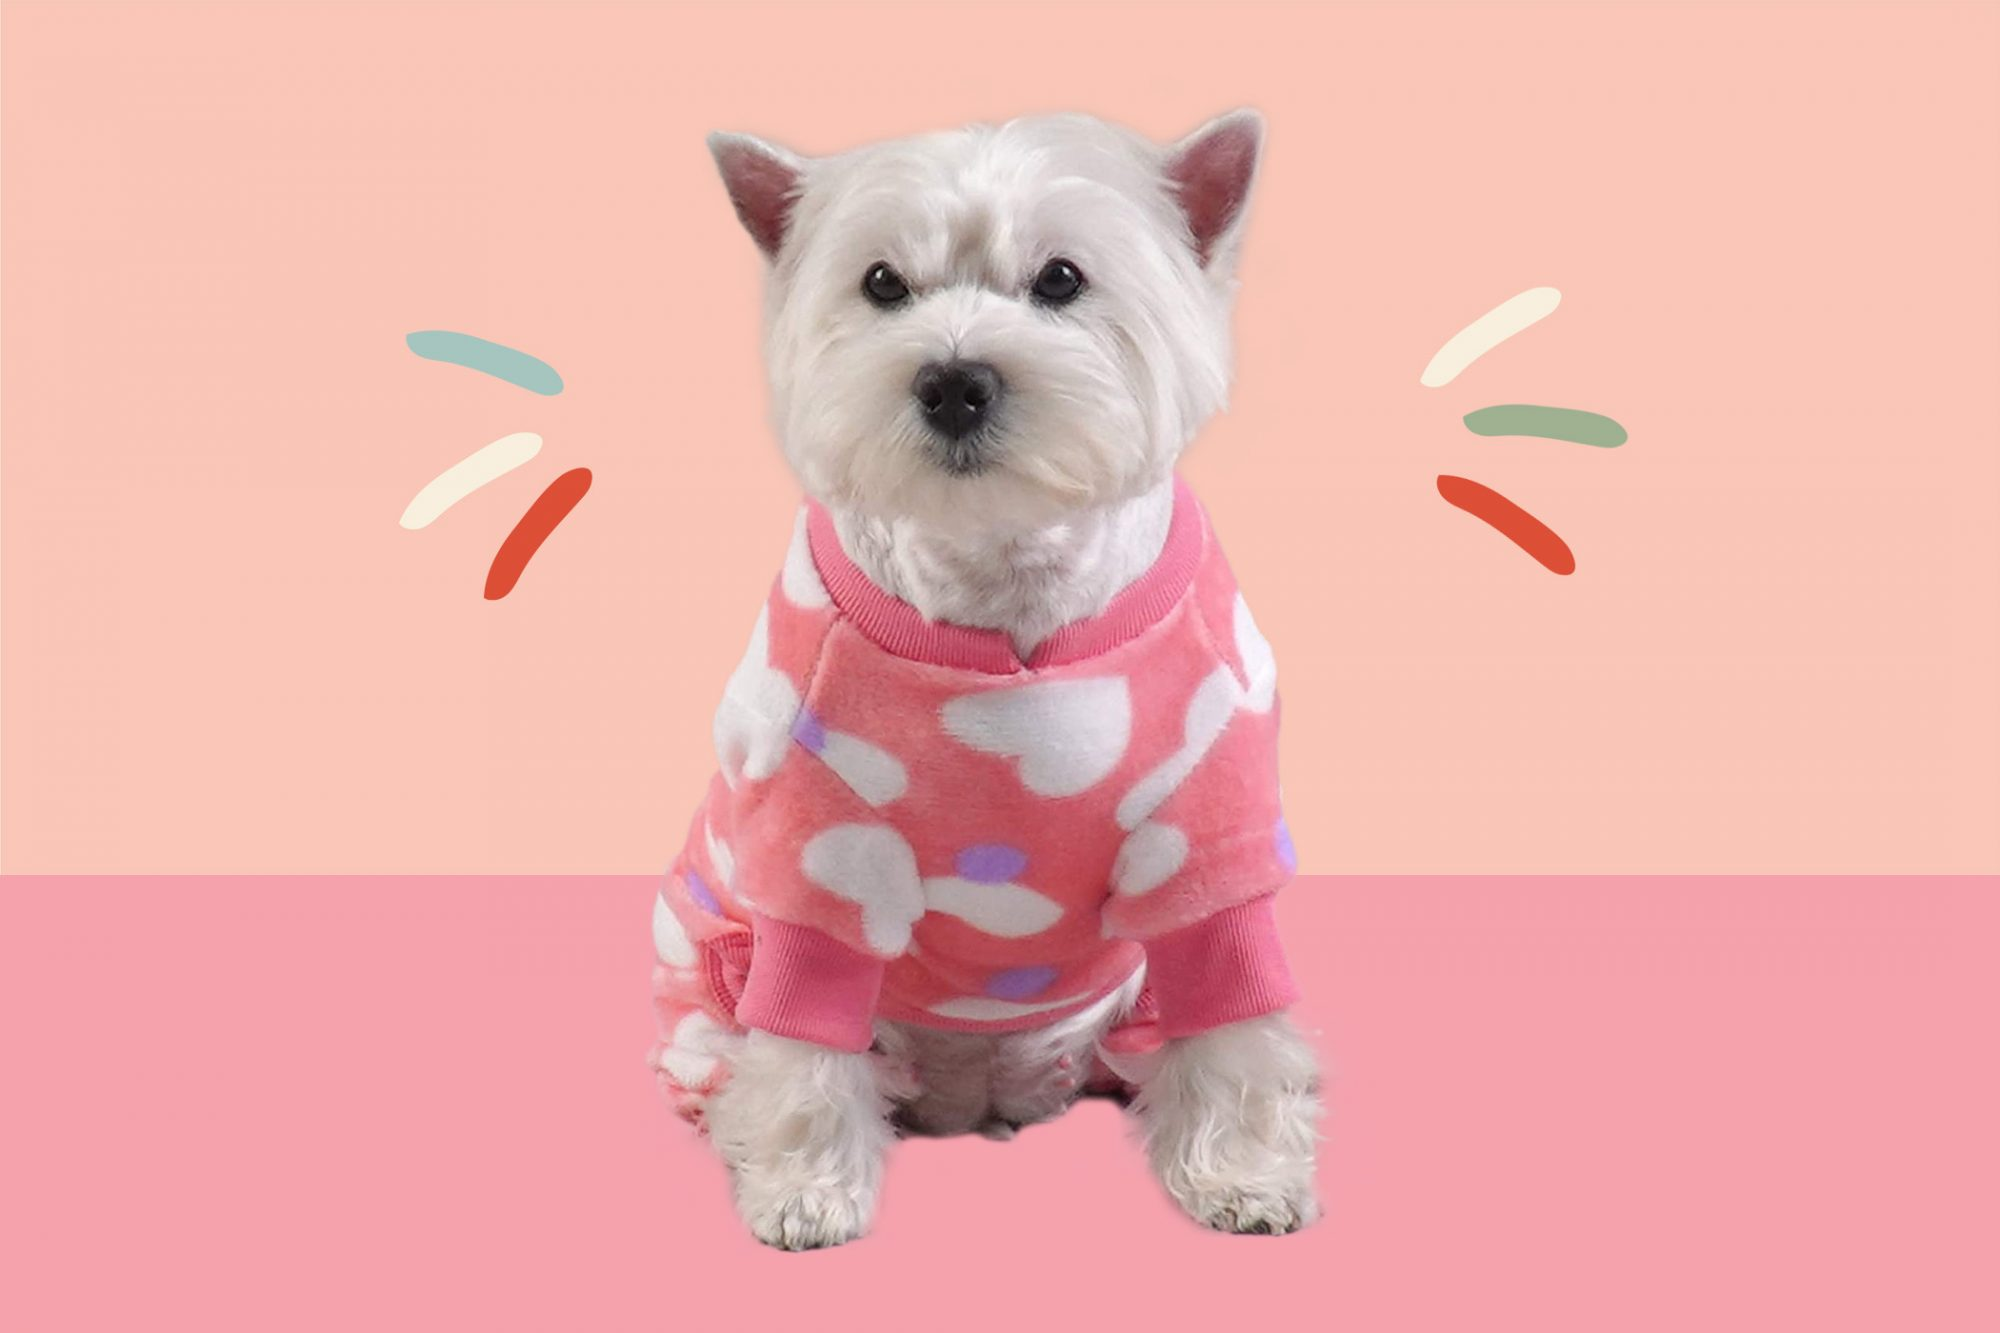 Small white dog in a pink sweater with white hearts